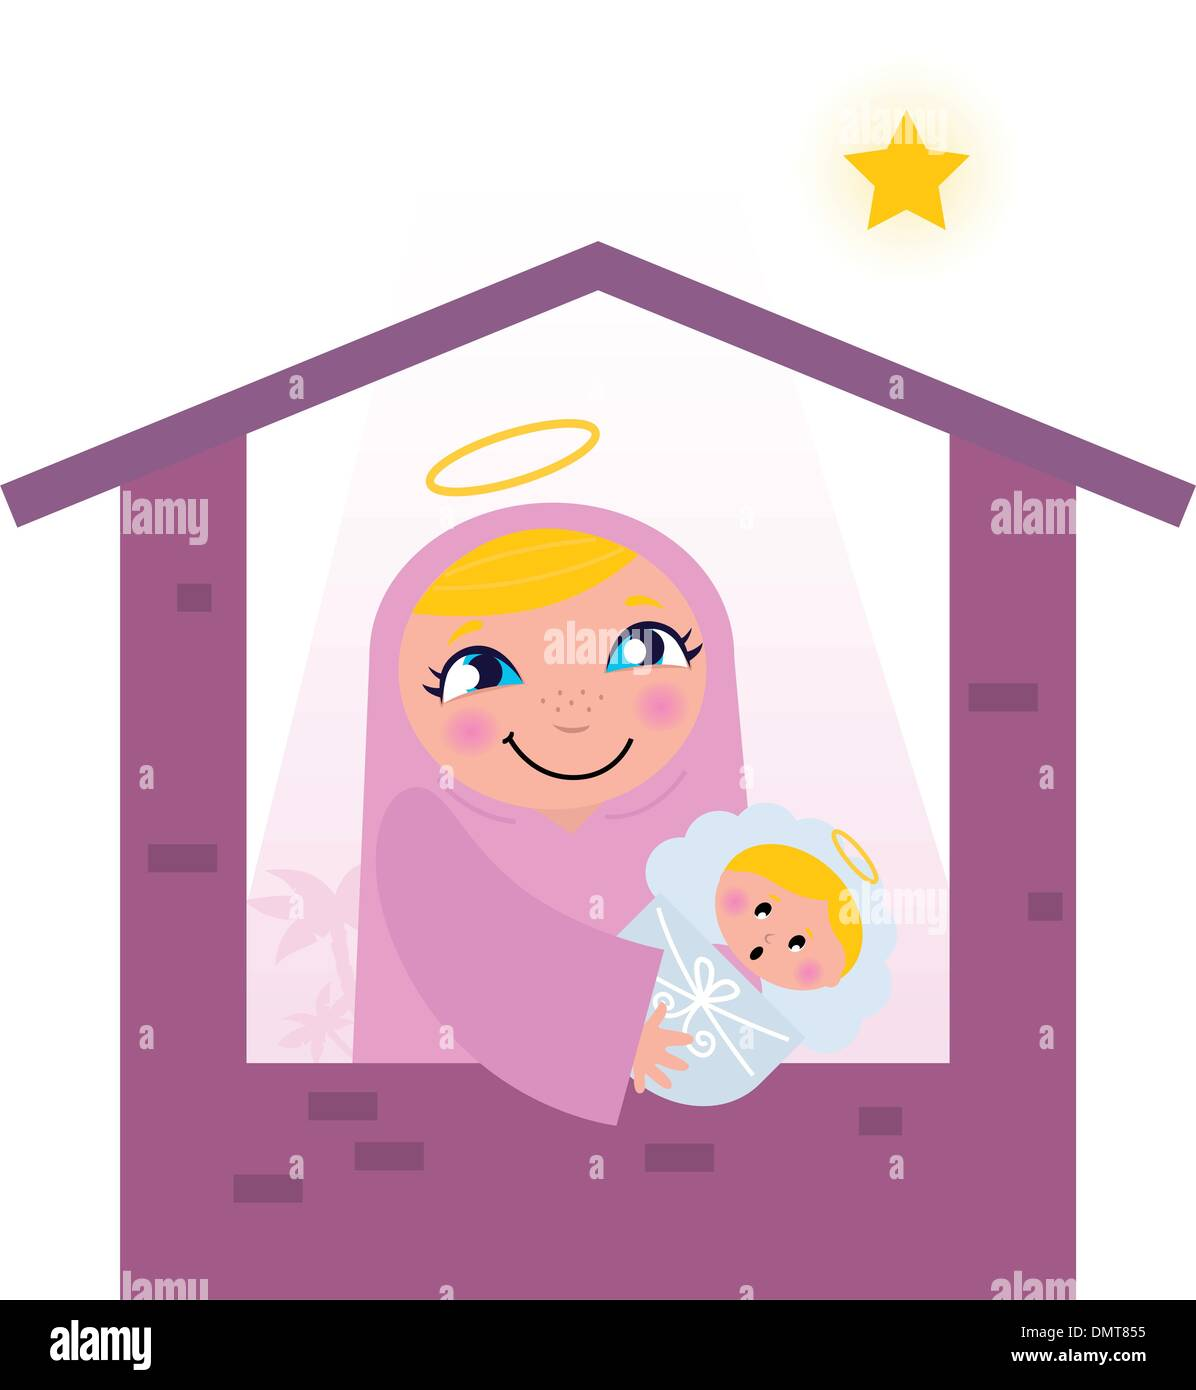 Virgin Mary With Child Stock Vector Images - Alamy